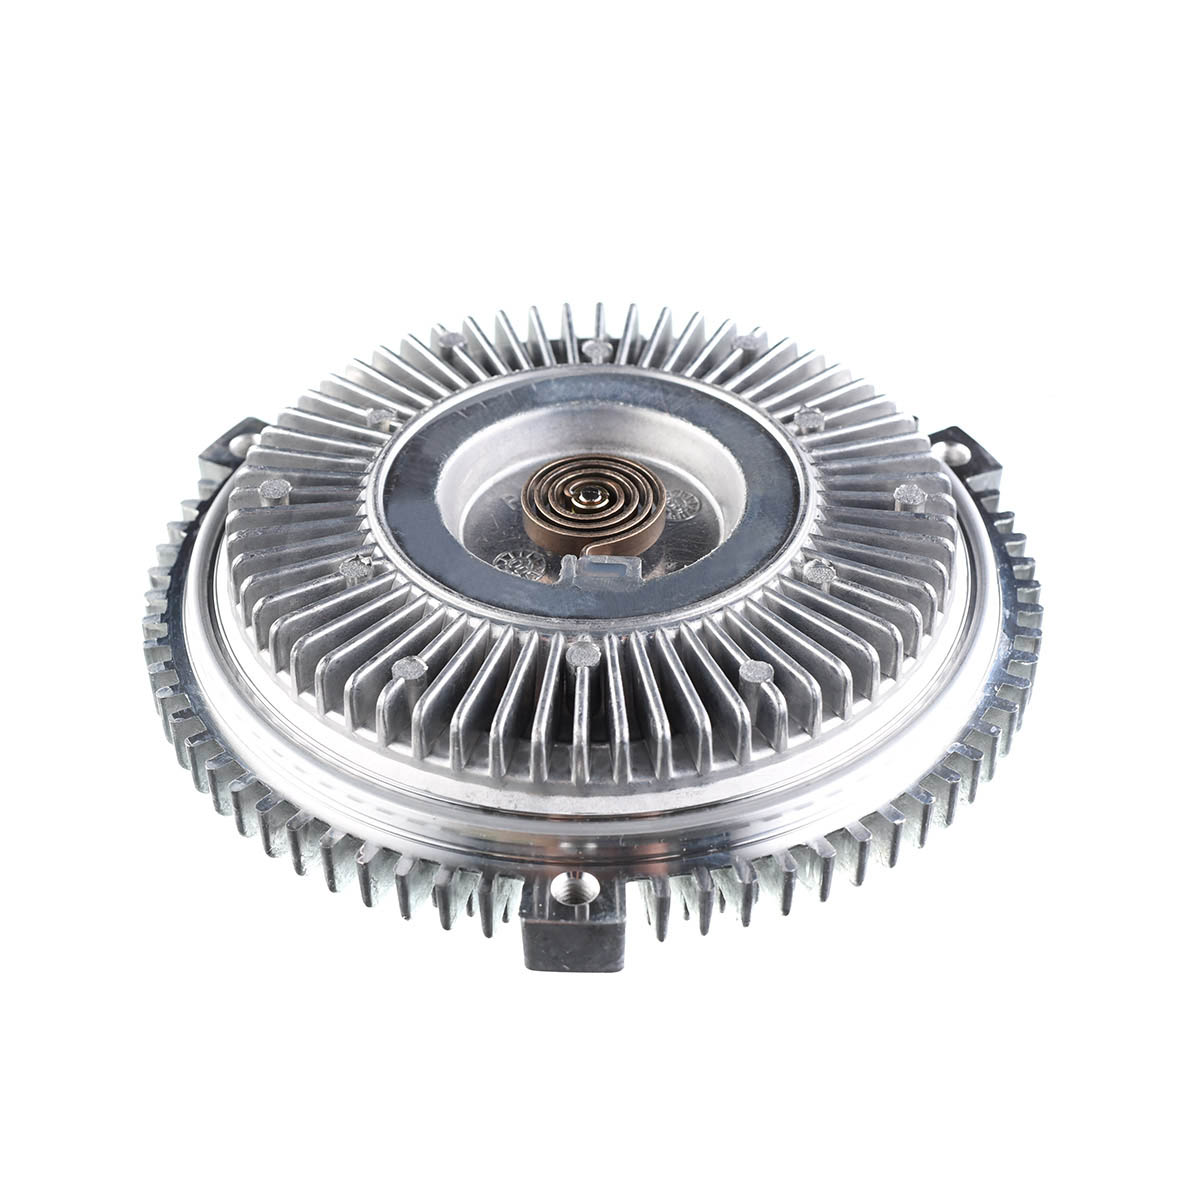 hight resolution of engine cooling fan clutch for bmw e31 e32 e34 e38 e39 530i 540i 740i 750il 840ci 11527502804 11521723829 11521745134 in fans kits from automobiles